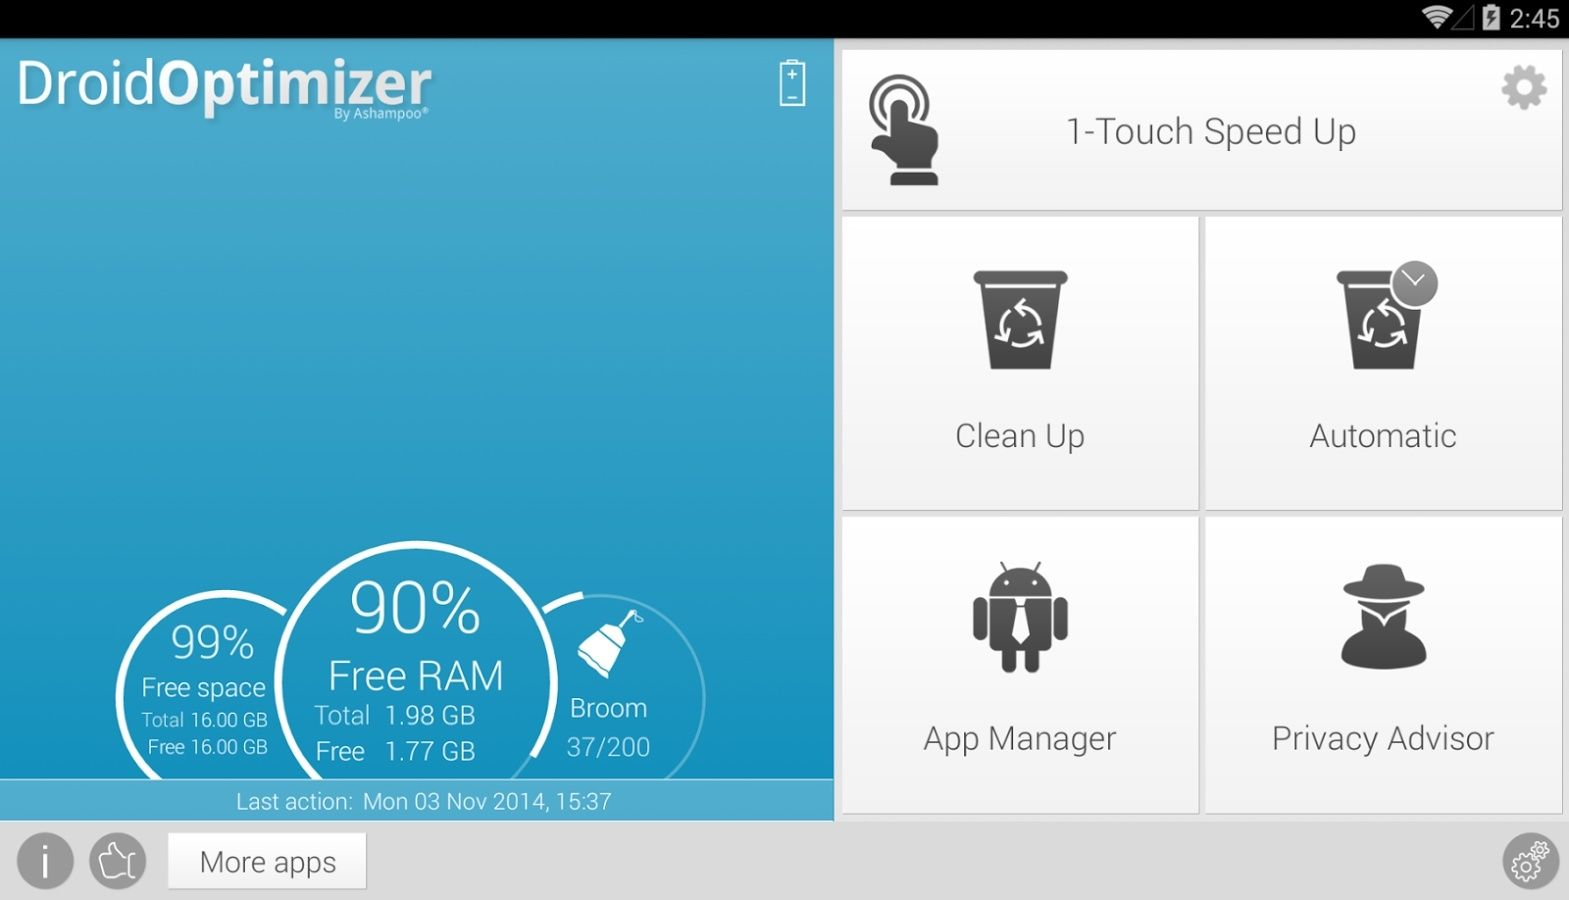 Android: Ashampoo Droid Optimizer 2.2.1 Unname20